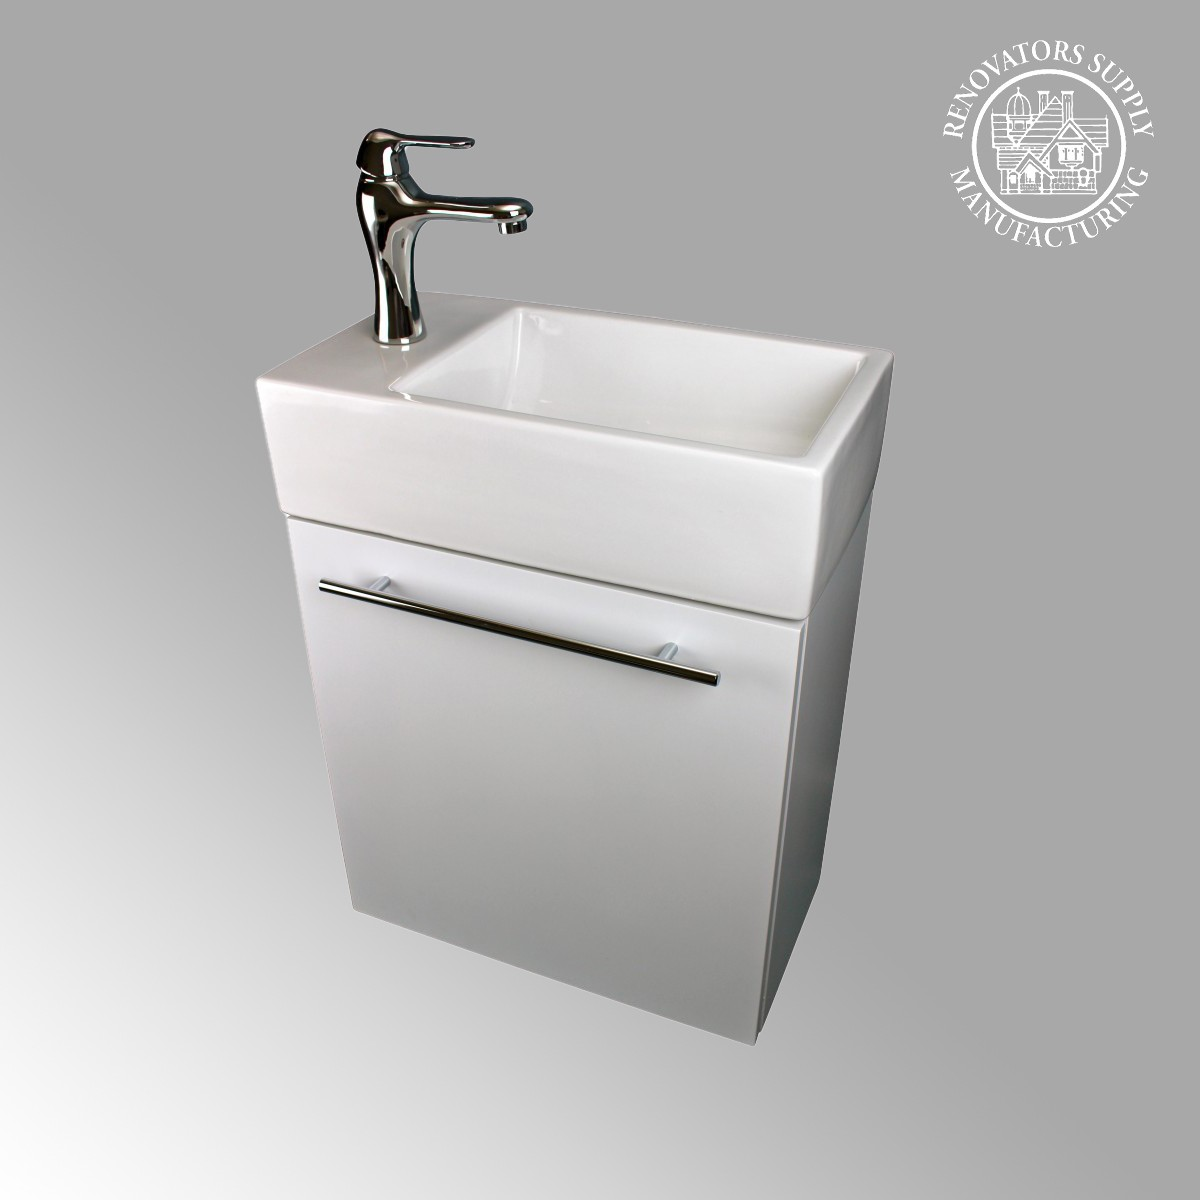 17 small white bathroom vanity wall mount cabinet sink faucet combo and drain for Bathroom vanities and sinks combos